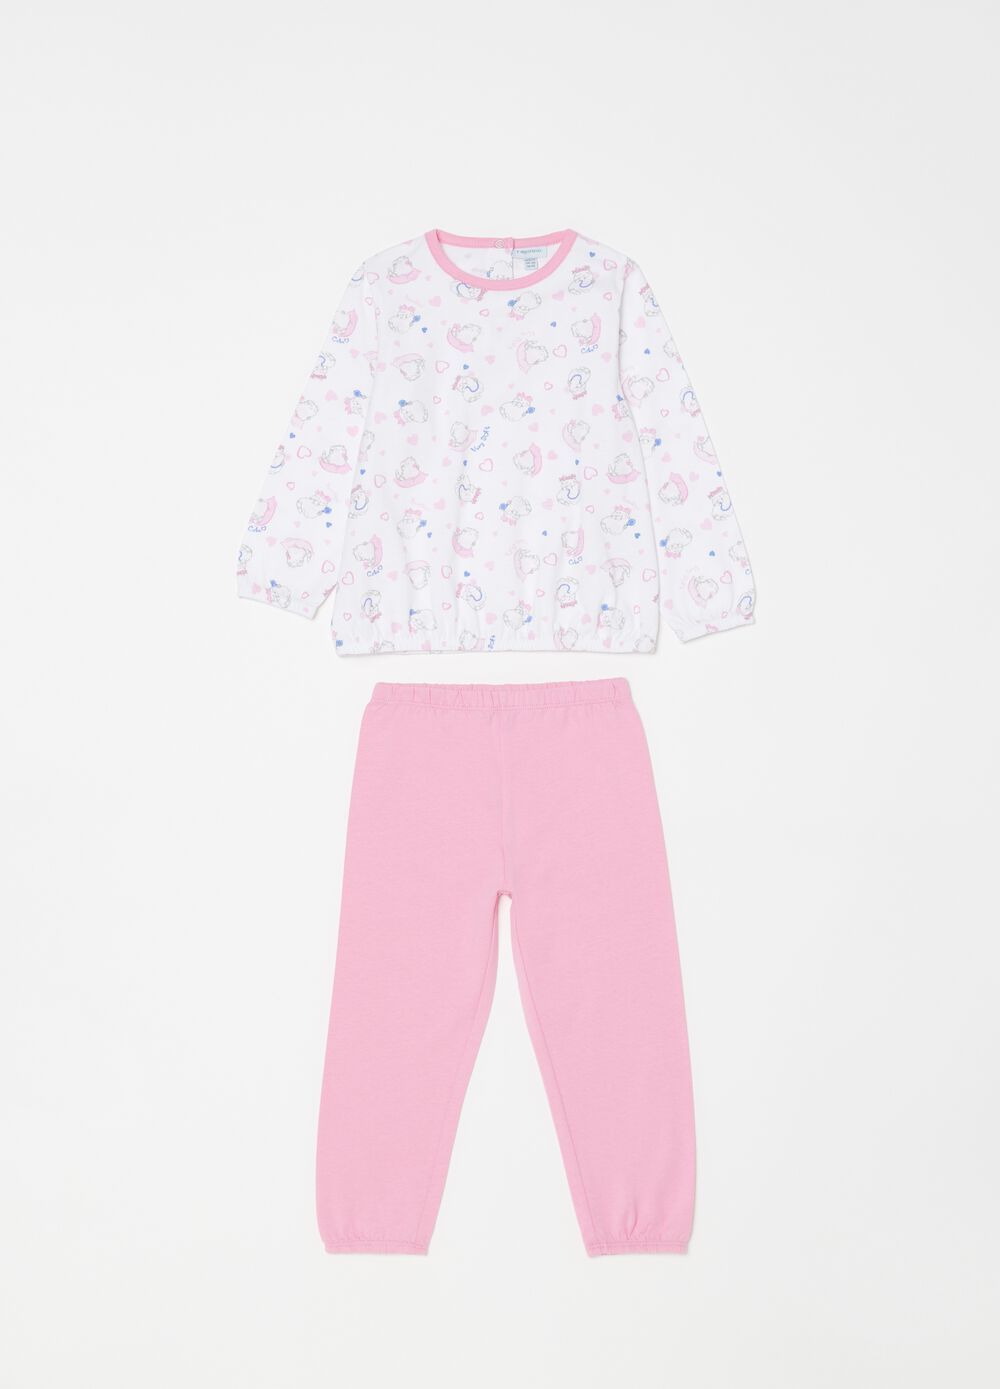 100% biocotton pyjamas with kittens pattern